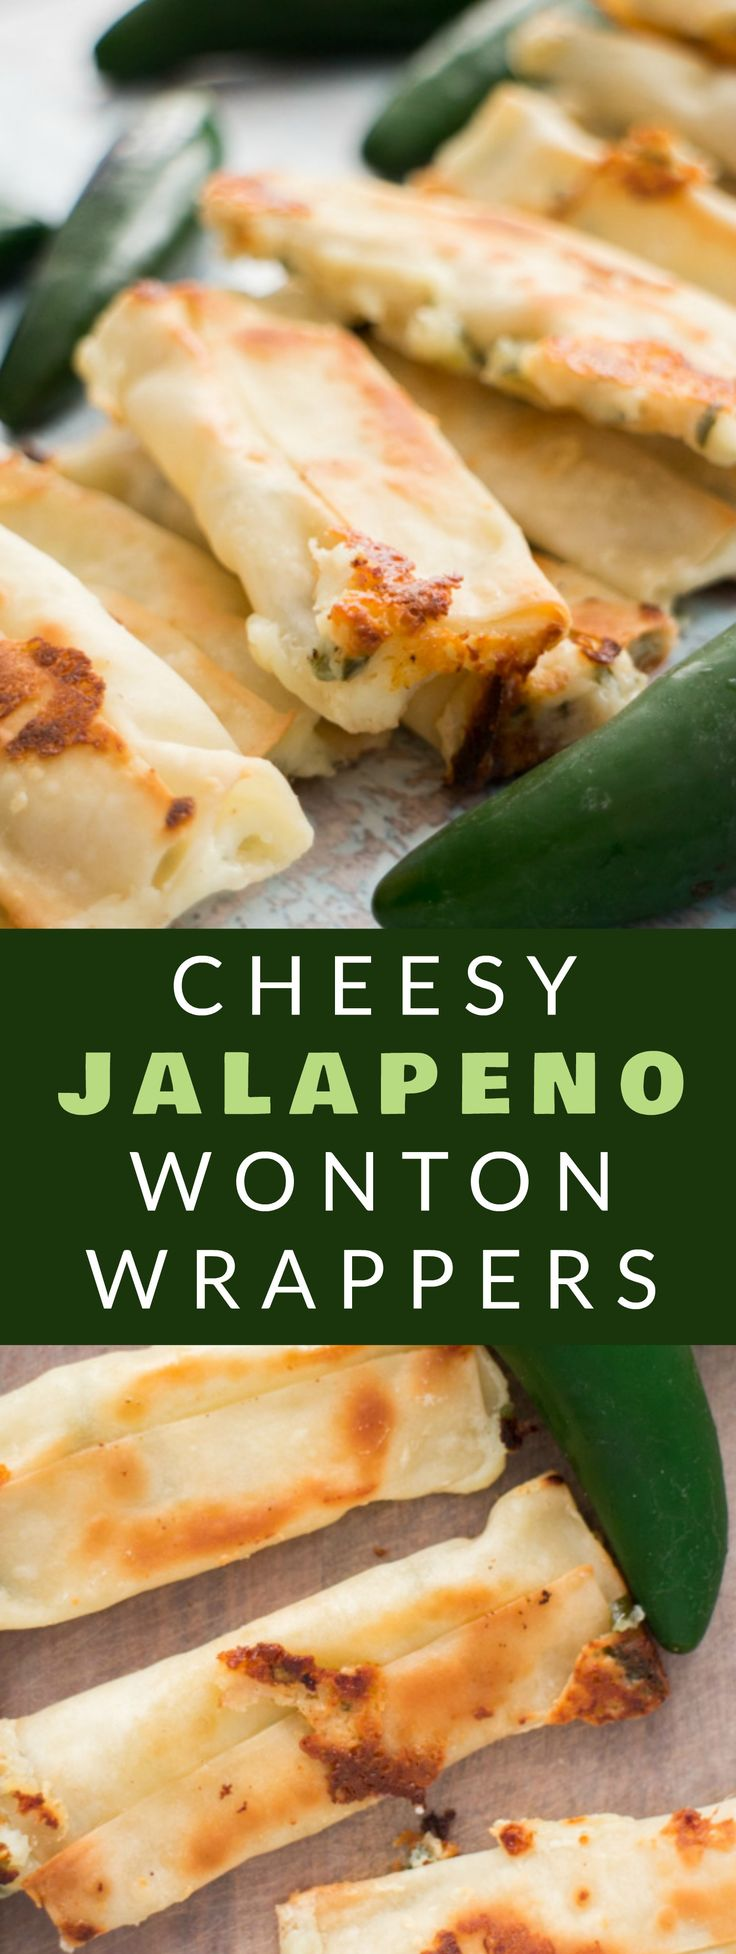 SUPERBOWL CHESSY JALAPENO WONTON POPPERS are so easy to make with wonton wrappers! This simple recipe uses cream cheese and jalapenos to wrap up in wonton wrappers! Bake them in the oven and serve them as a healthy appetizer! Everyone always LOVES these baked snacks!